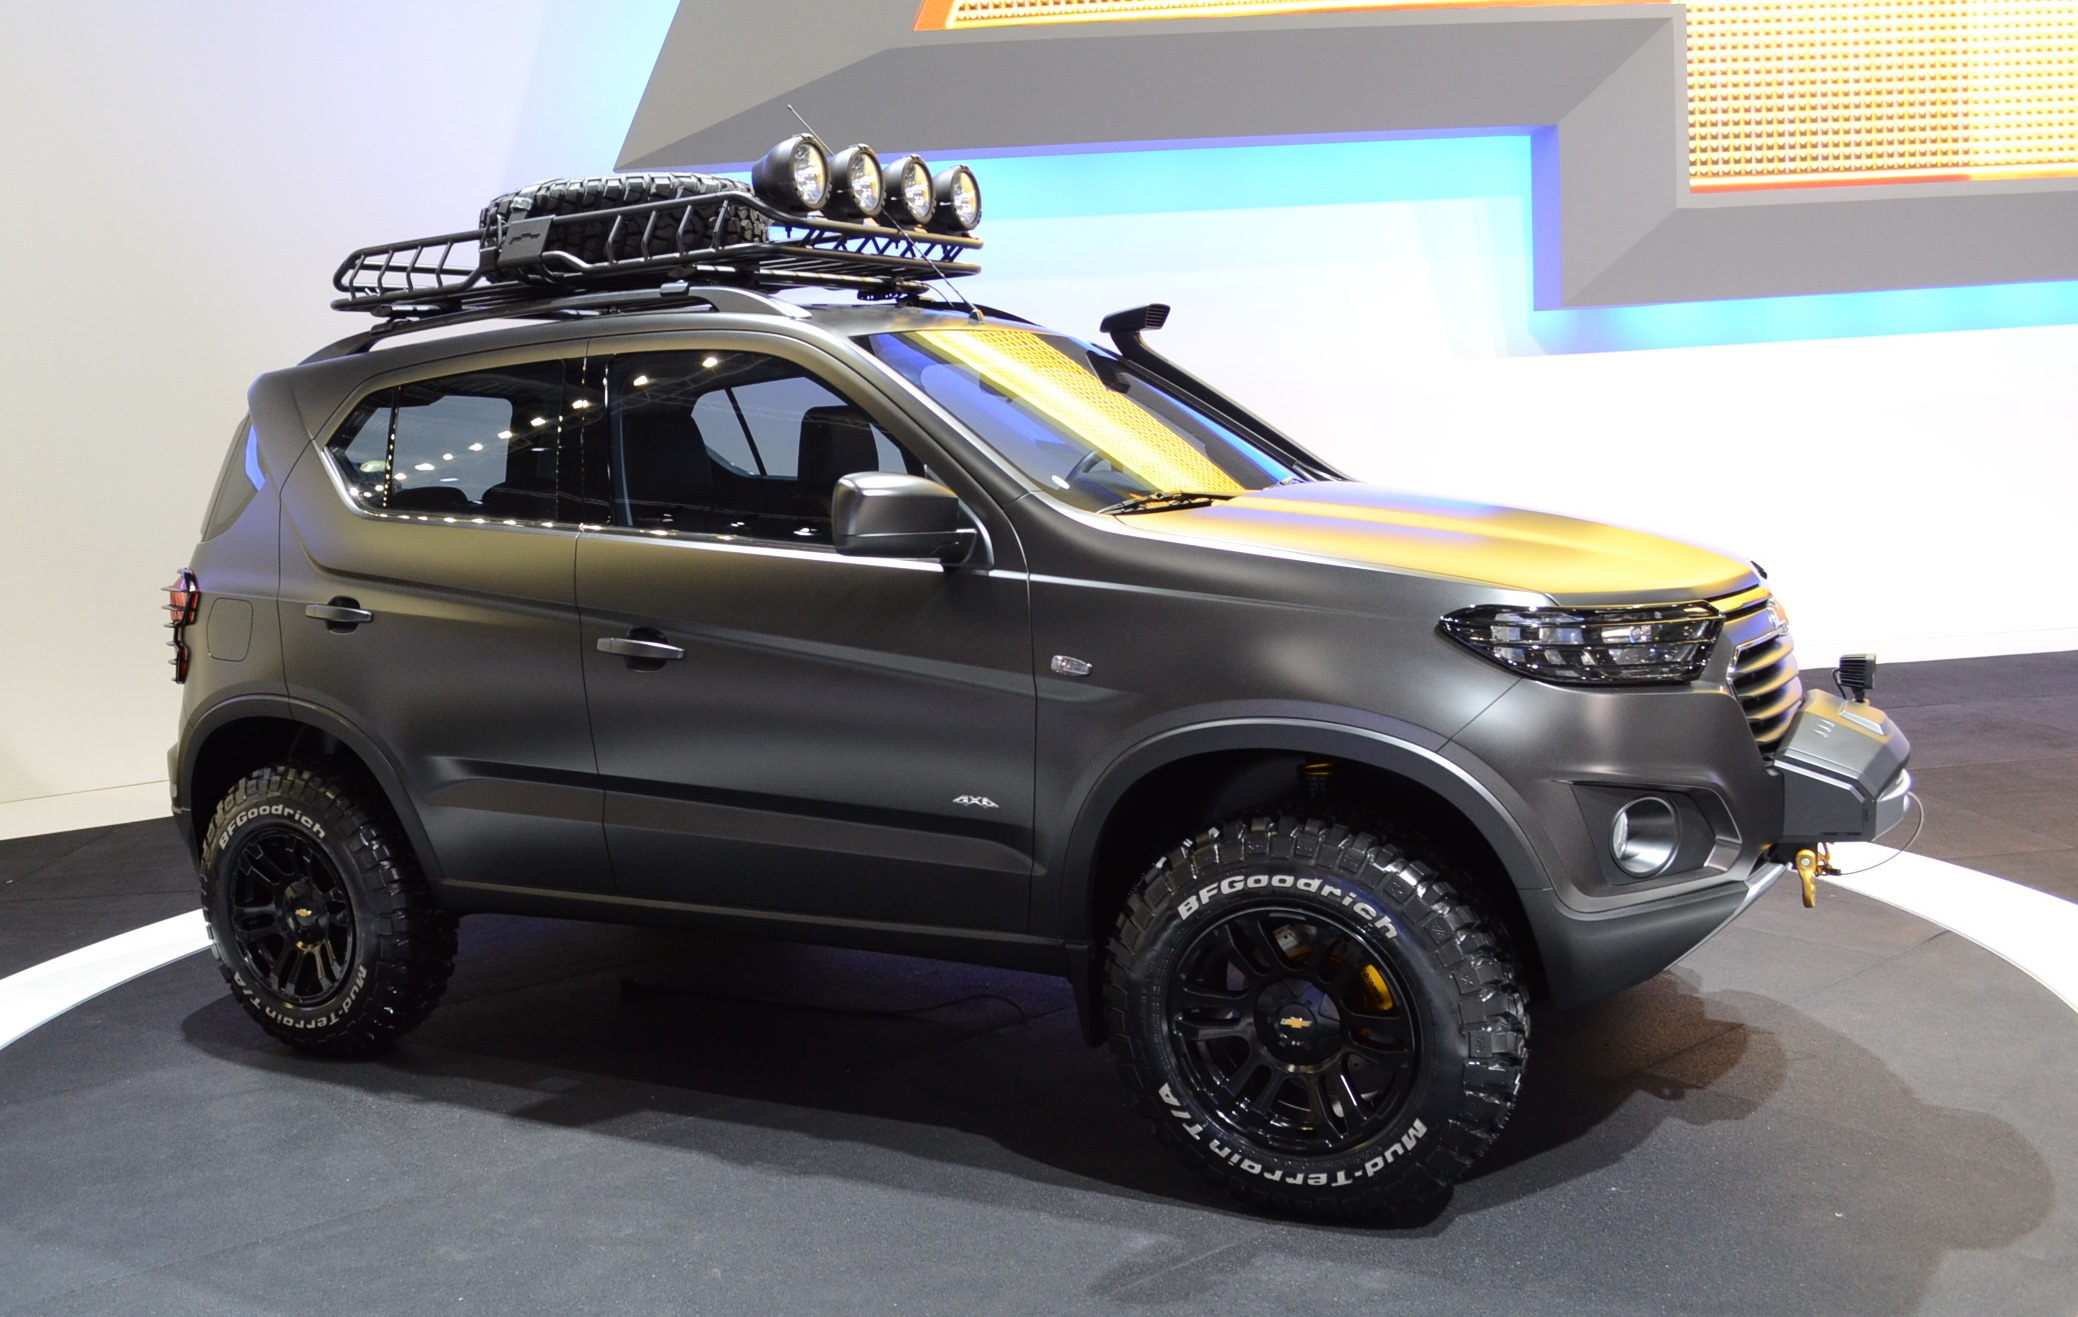 2016 chevrolet niva pictures information and specs. Black Bedroom Furniture Sets. Home Design Ideas